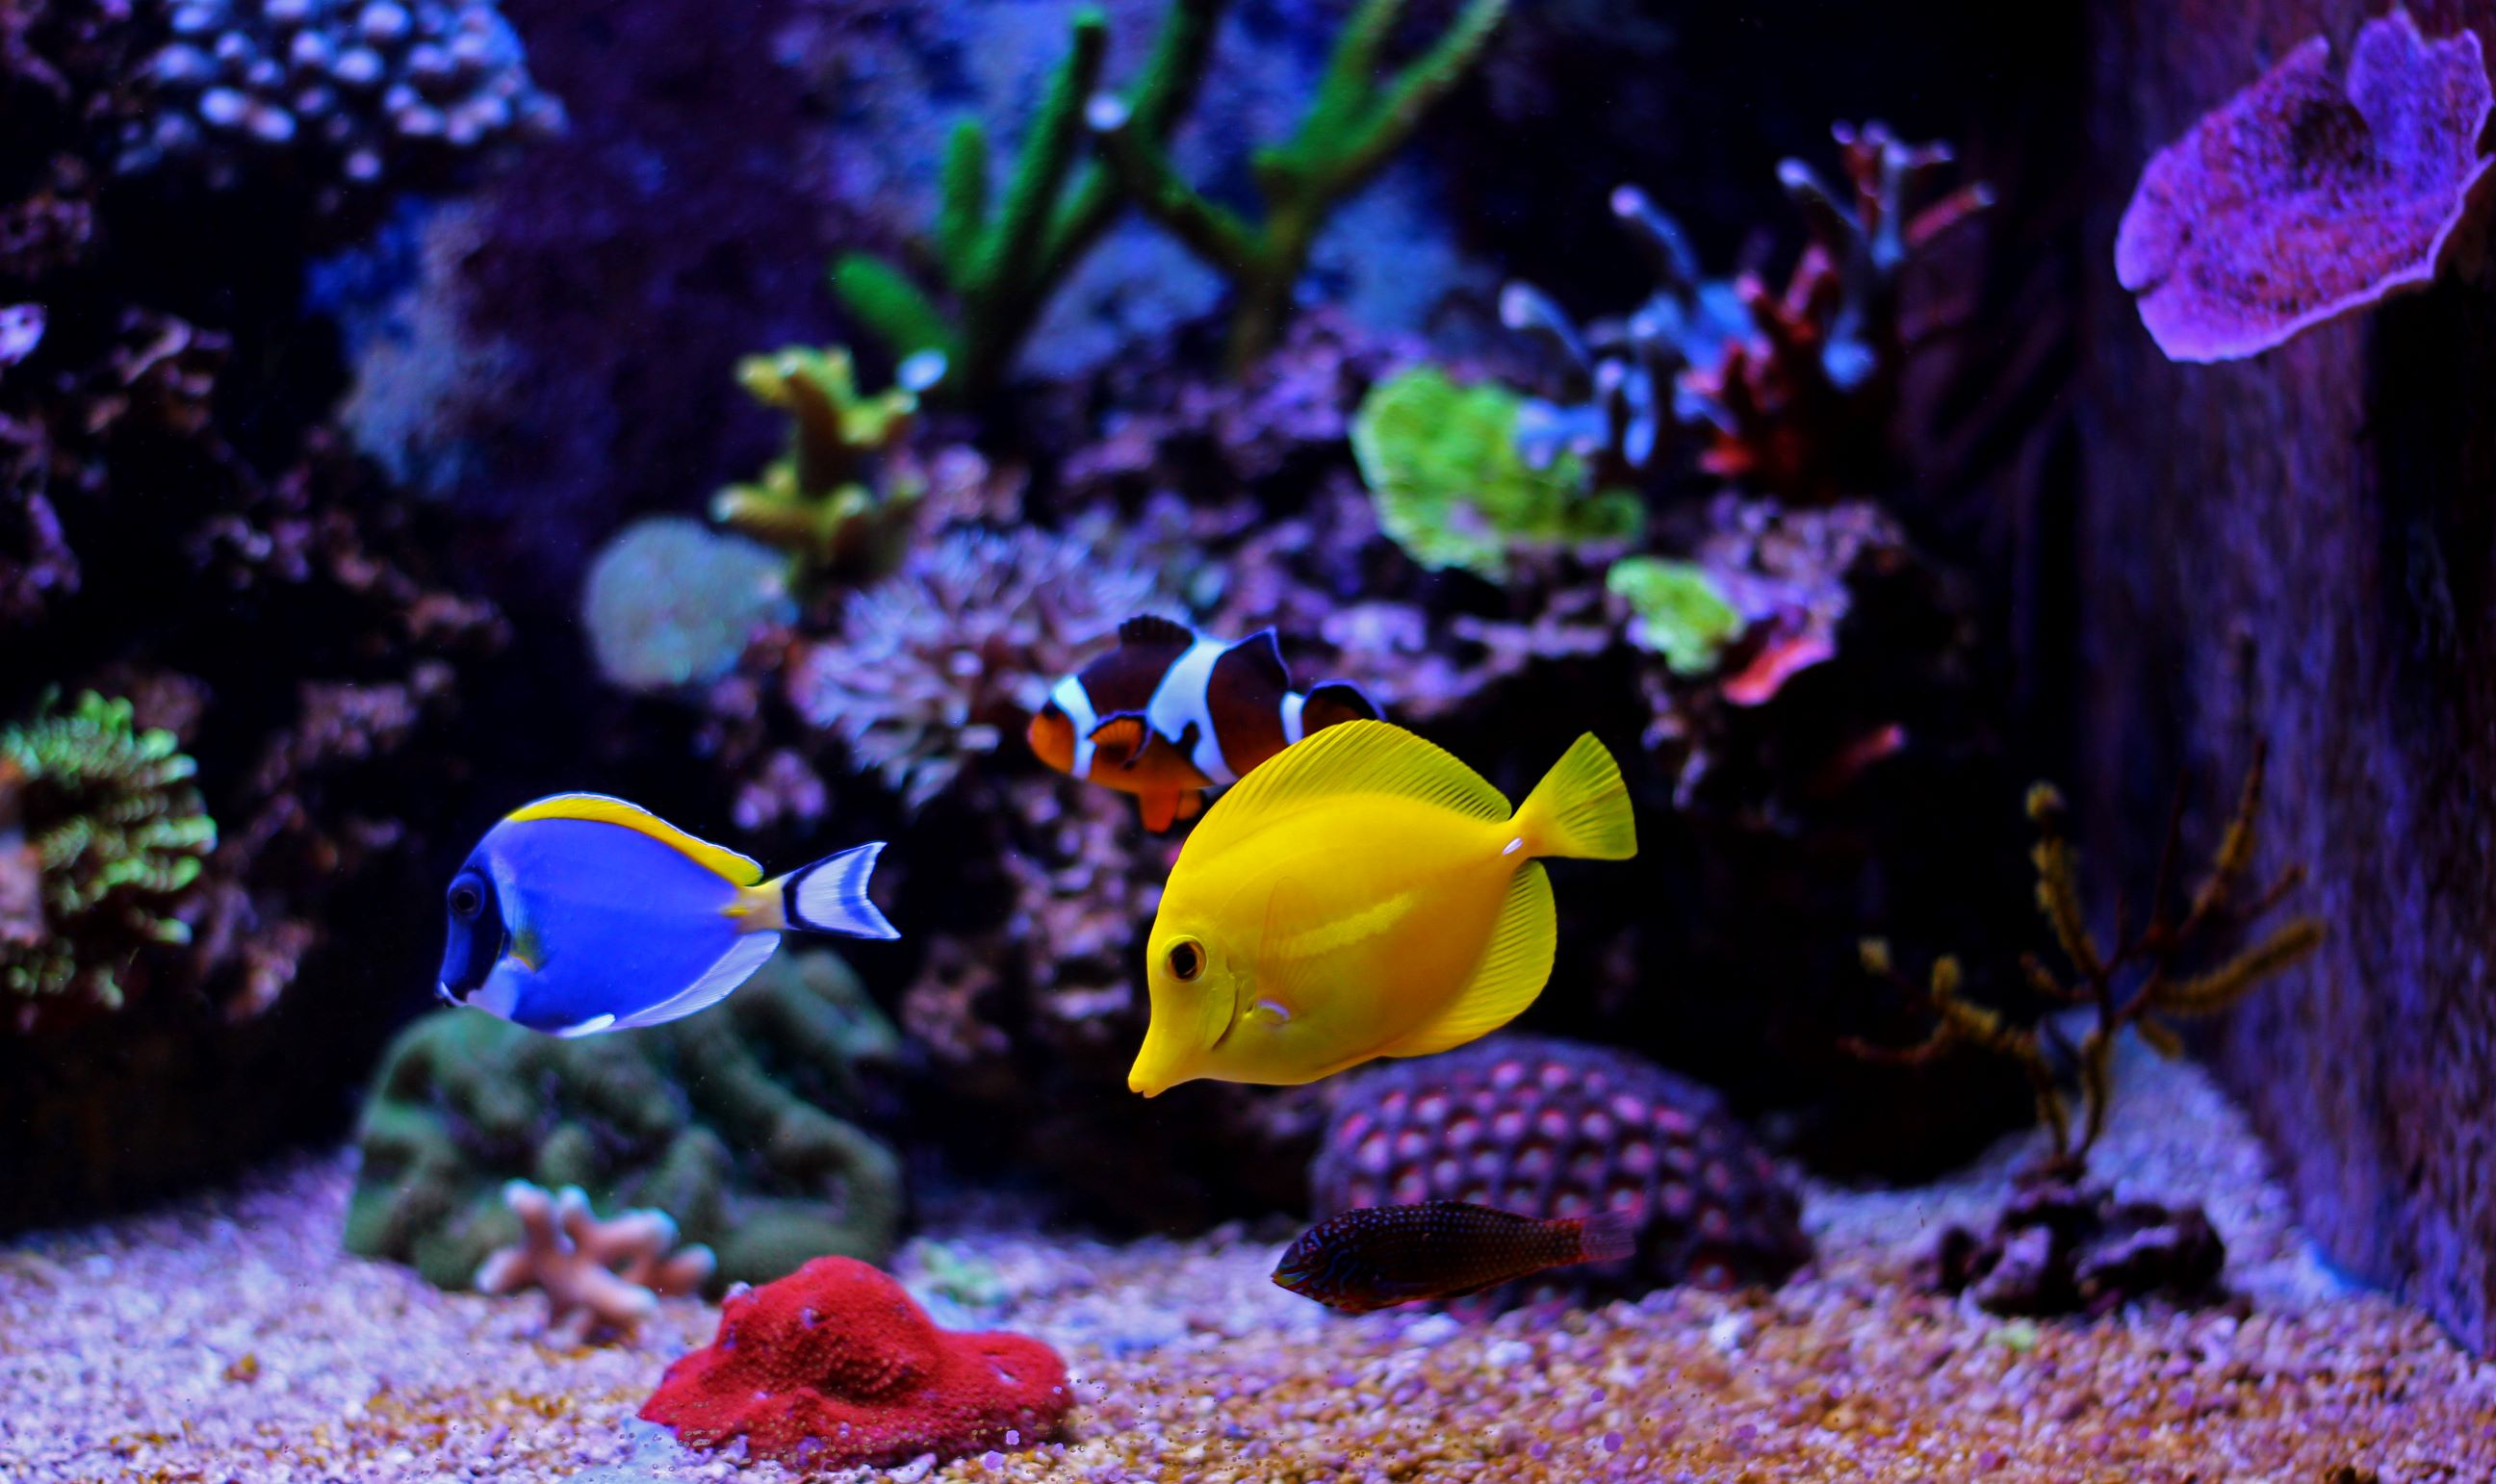 Tropical fish can be either saltwater fish or freshwater fish. They are often vibrantly colored and tend to prefer slightly warmer water in the fish tank.